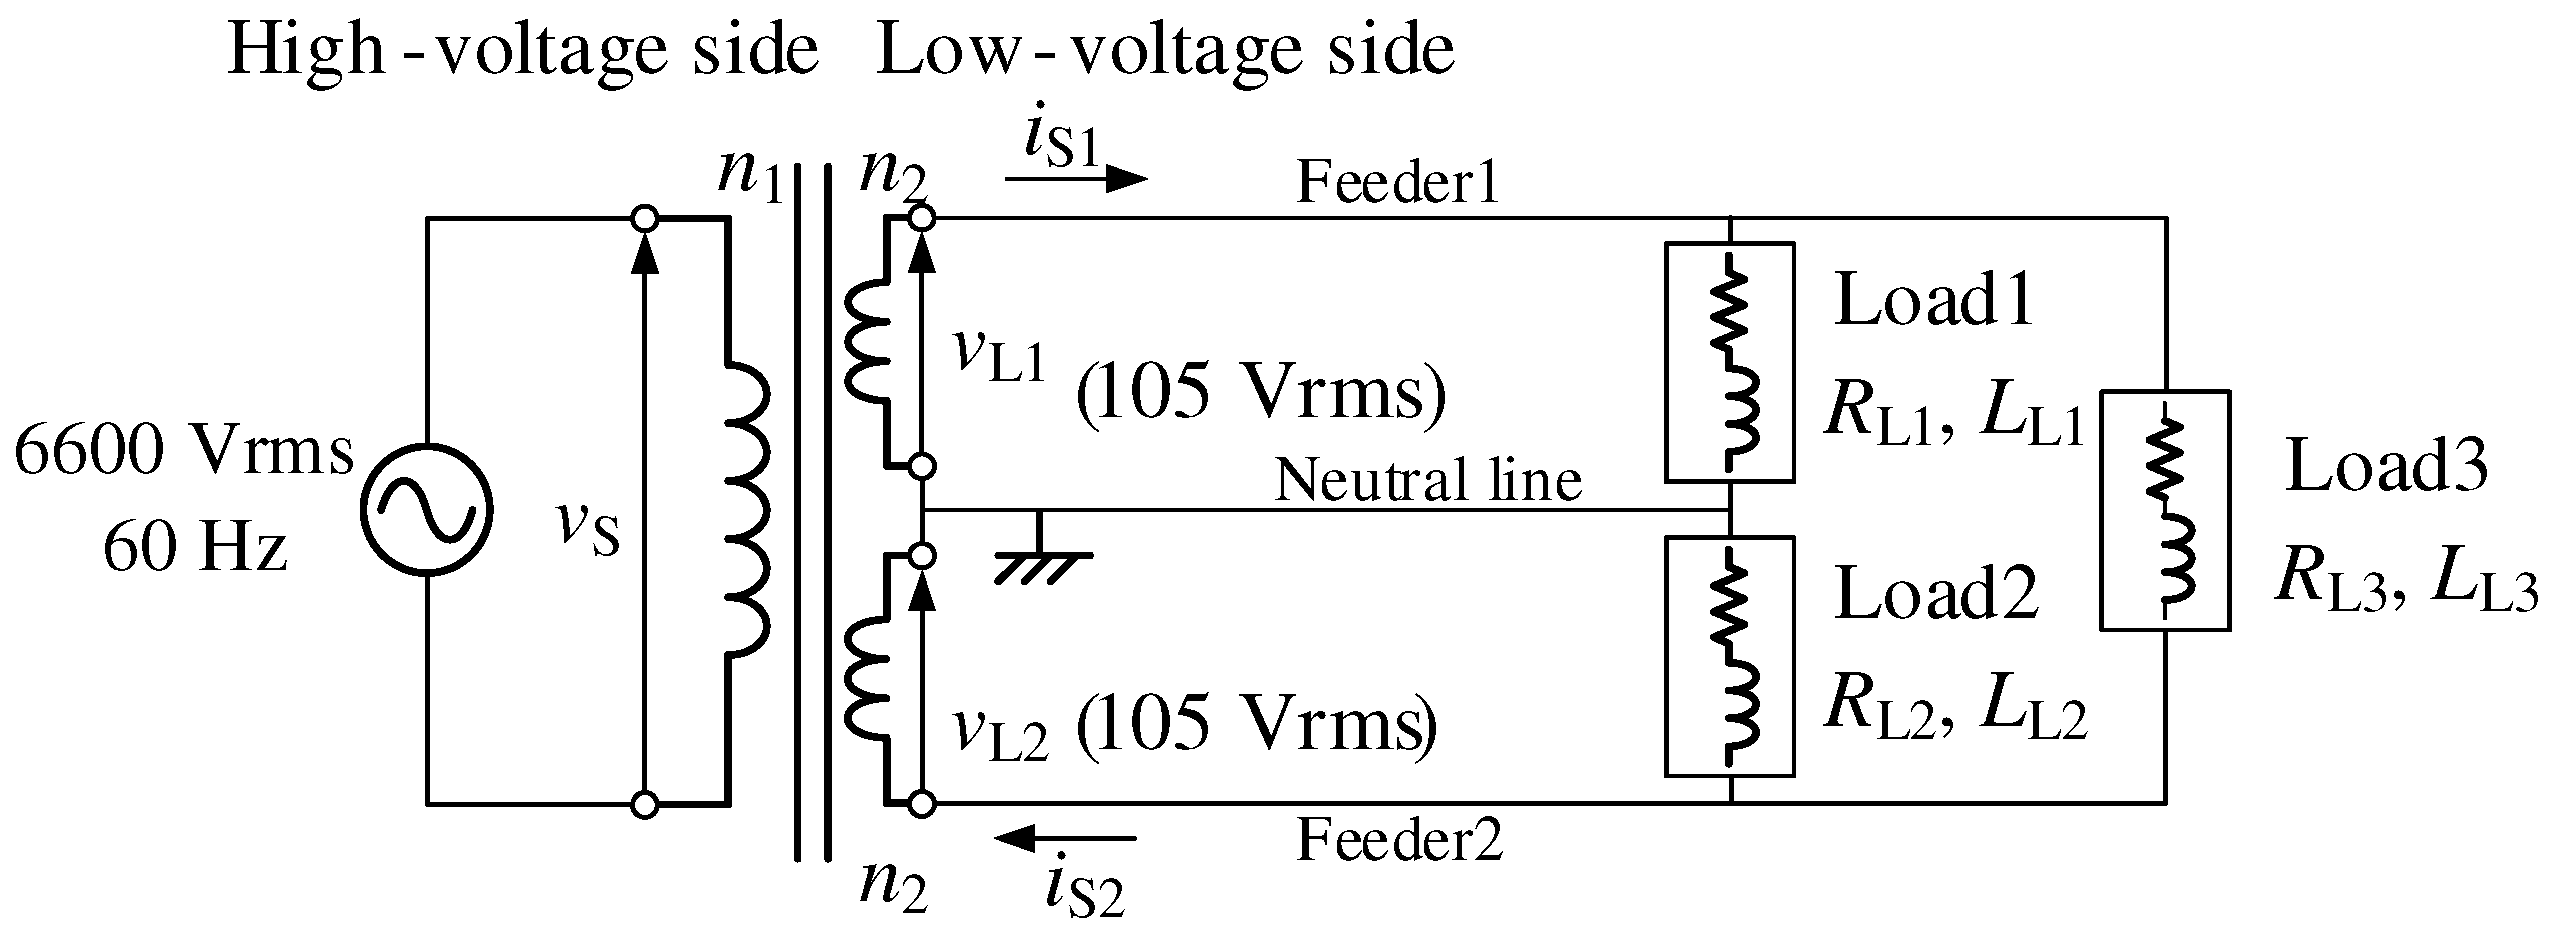 Energies | Free Full-Text | Constant DC-Capacitor Voltage-Control ...